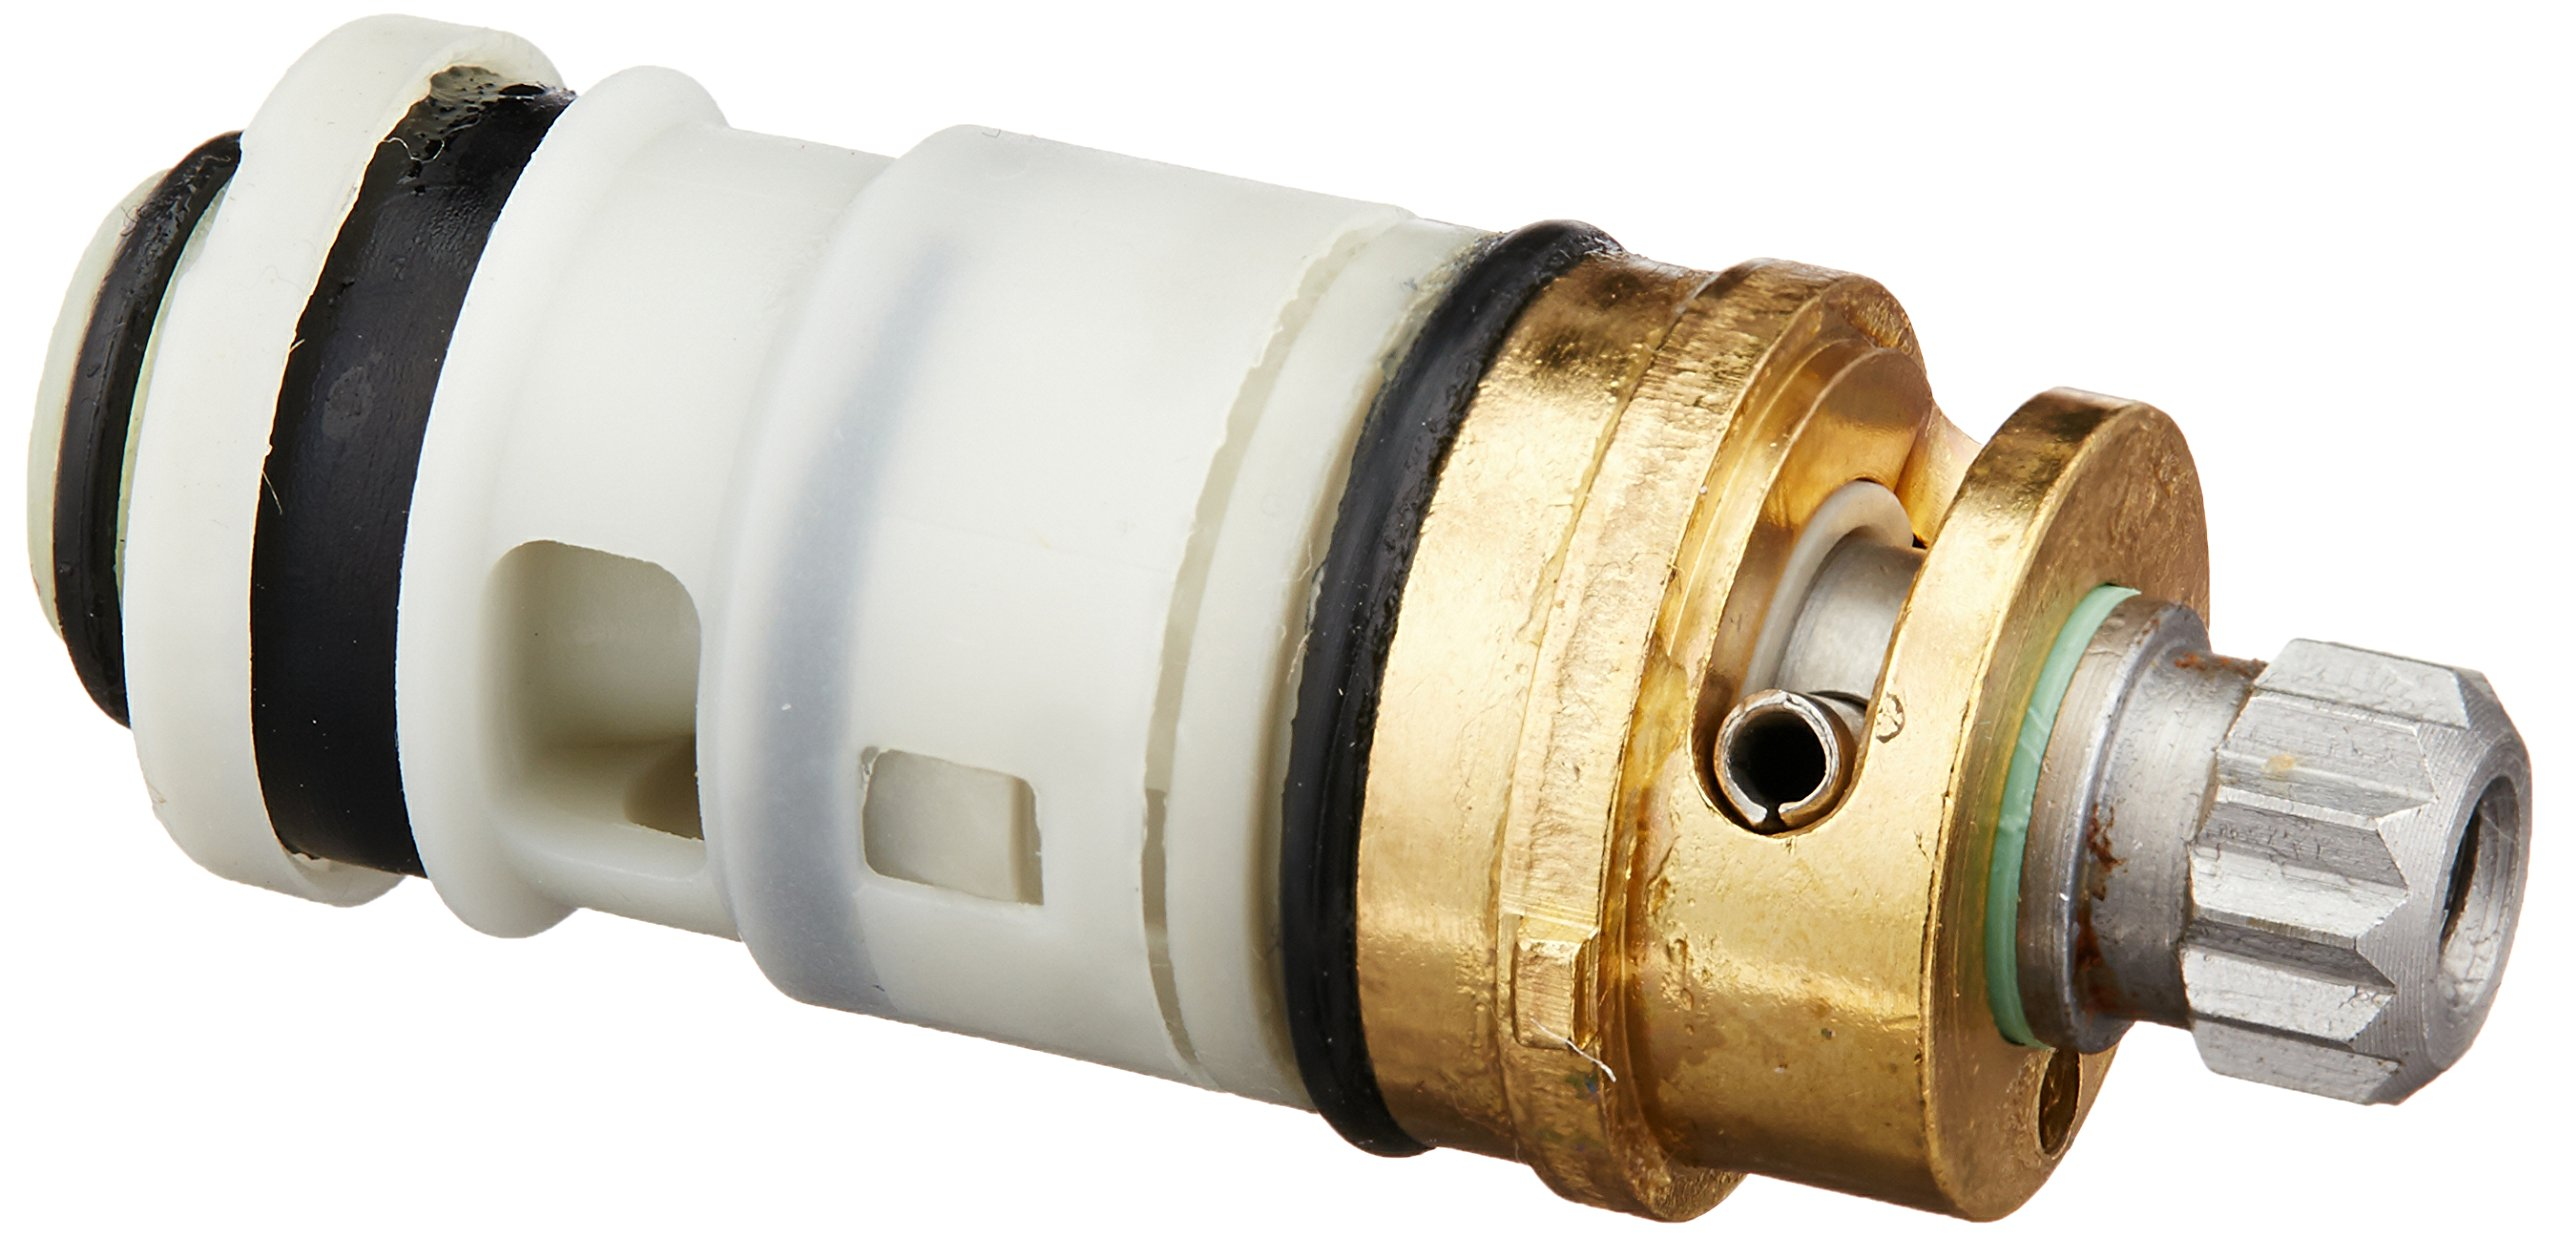 Elkay A42057R Replacement Micracore Cartridge for The Cold Side with Metal Stems